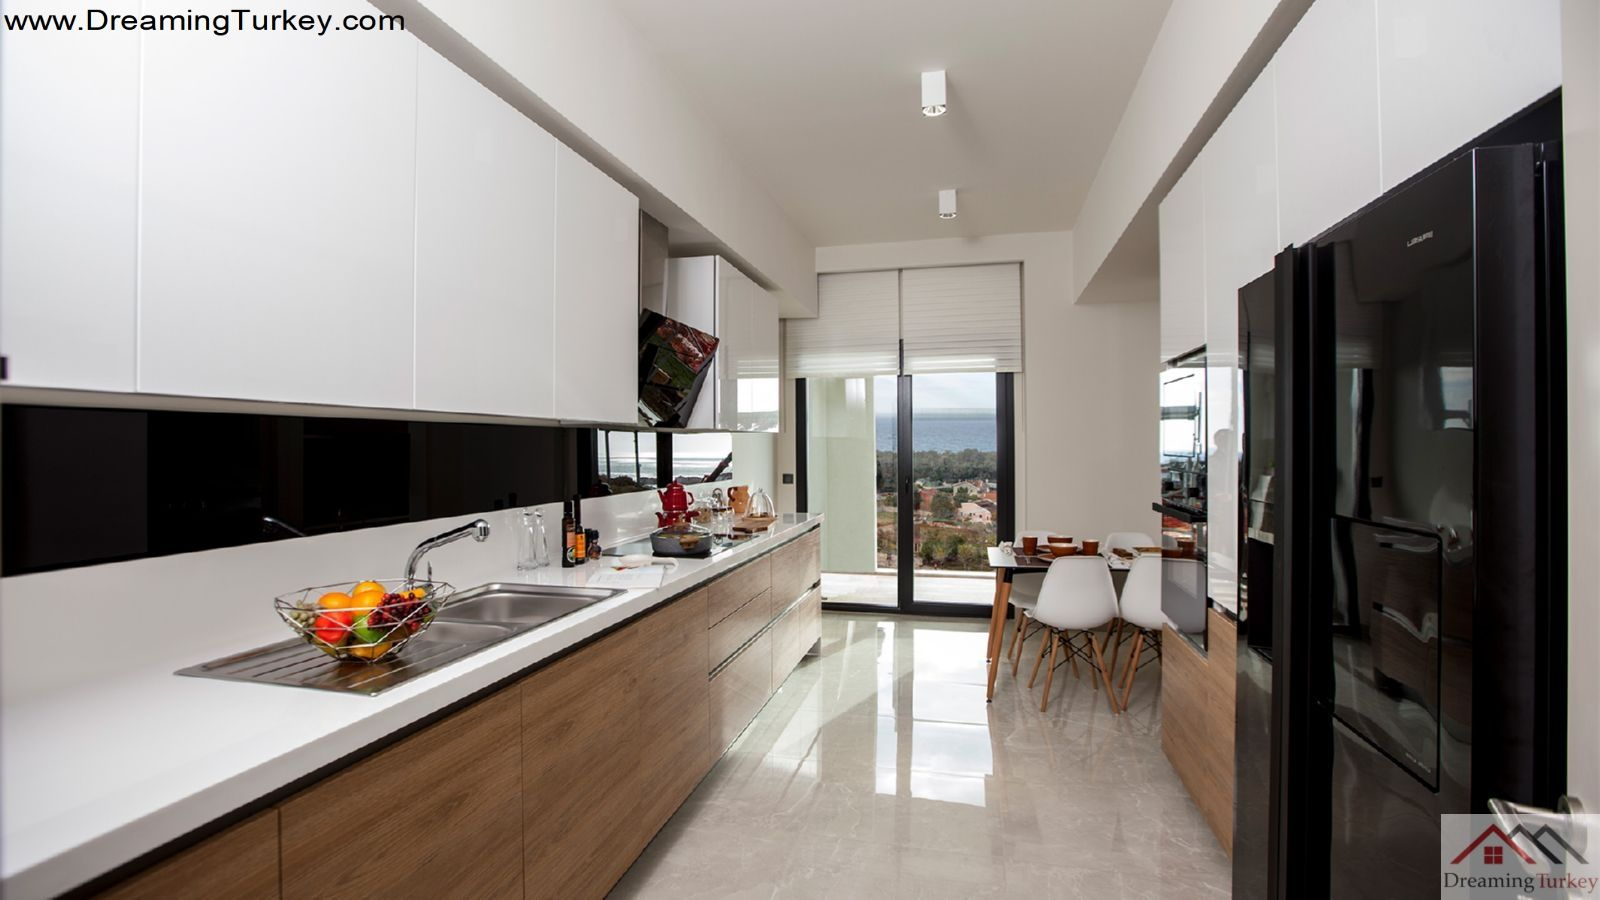 3-Bedroom Apartment Next to the Metrobus in Istanbul